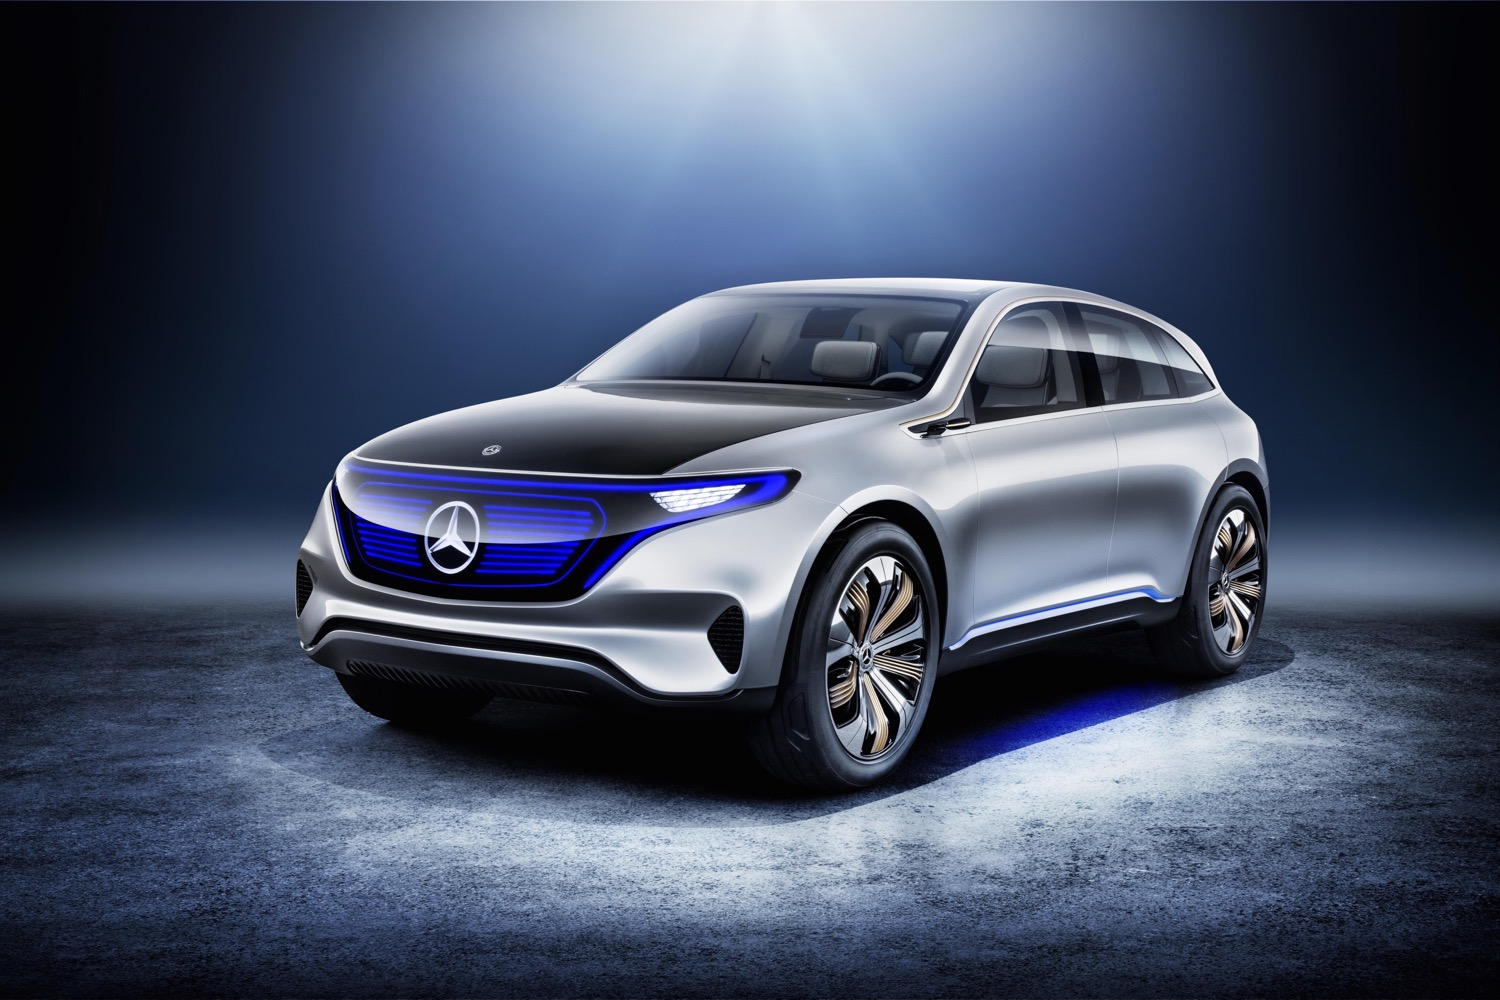 Germany Cars: Germany Wants Gas-powered Cars Banned In Europe